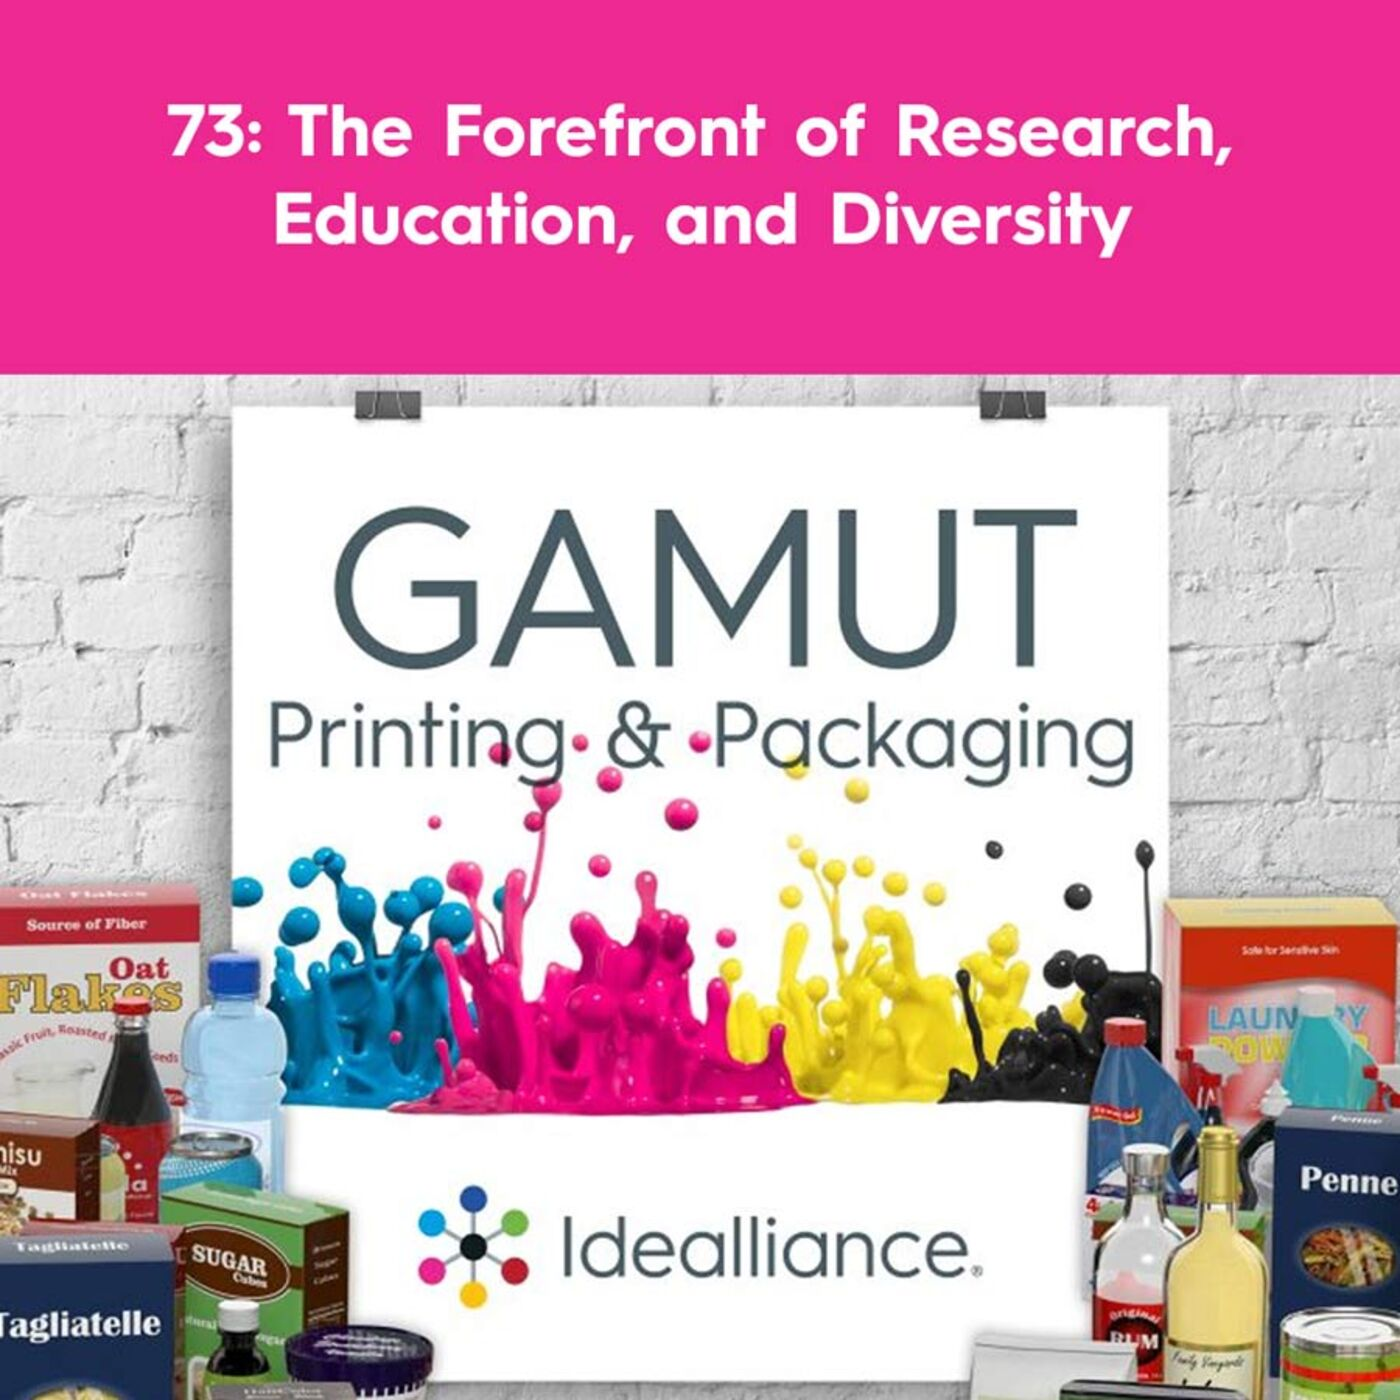 73: The Forefront of Research, Education, and Diversity